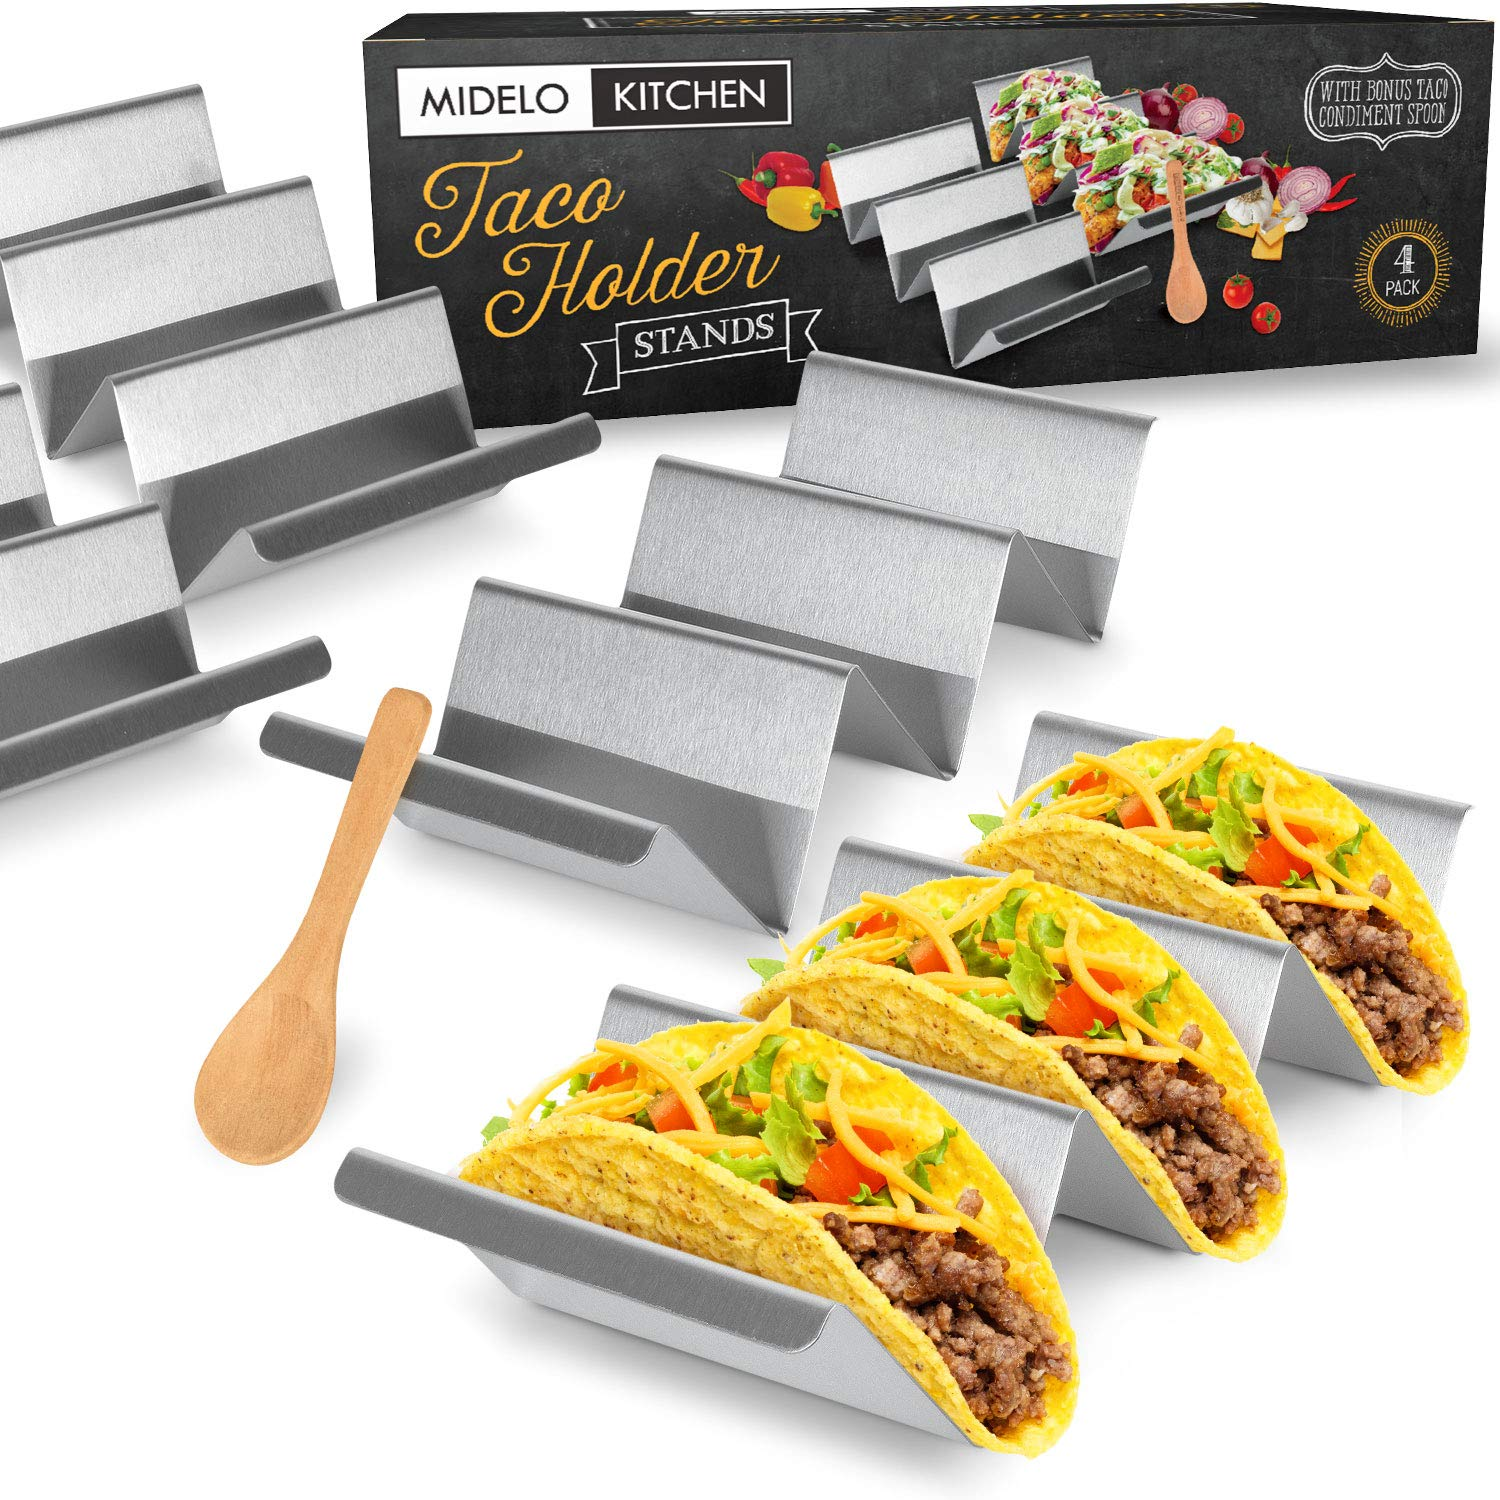 Midelo Kitchen Taco Holder Stand Set - oddgifts.com